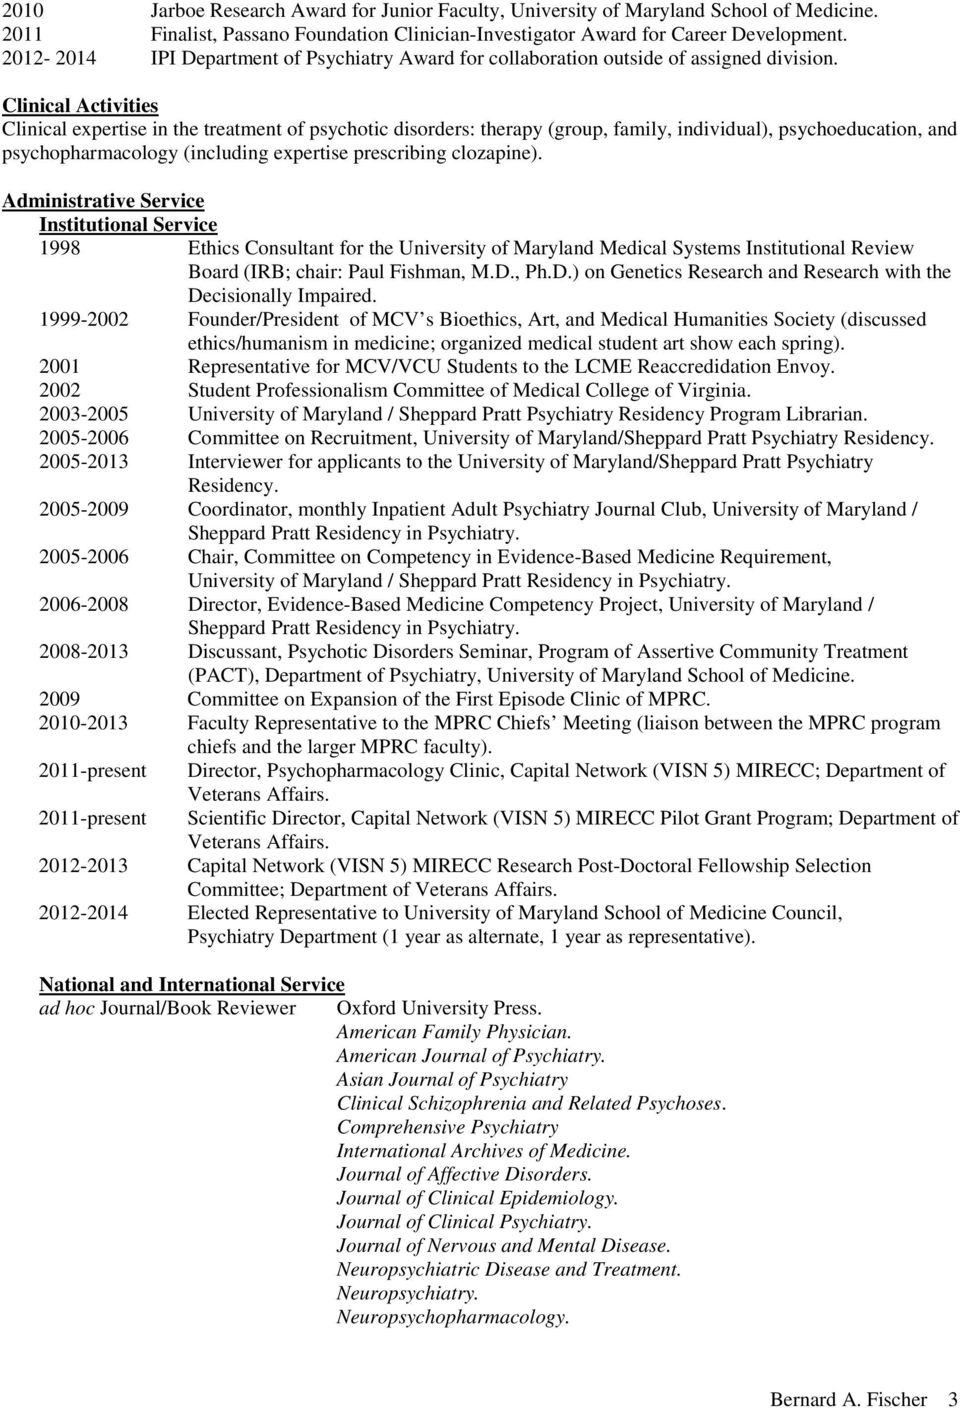 Certification Diplomat, American Board of Psychiatry and